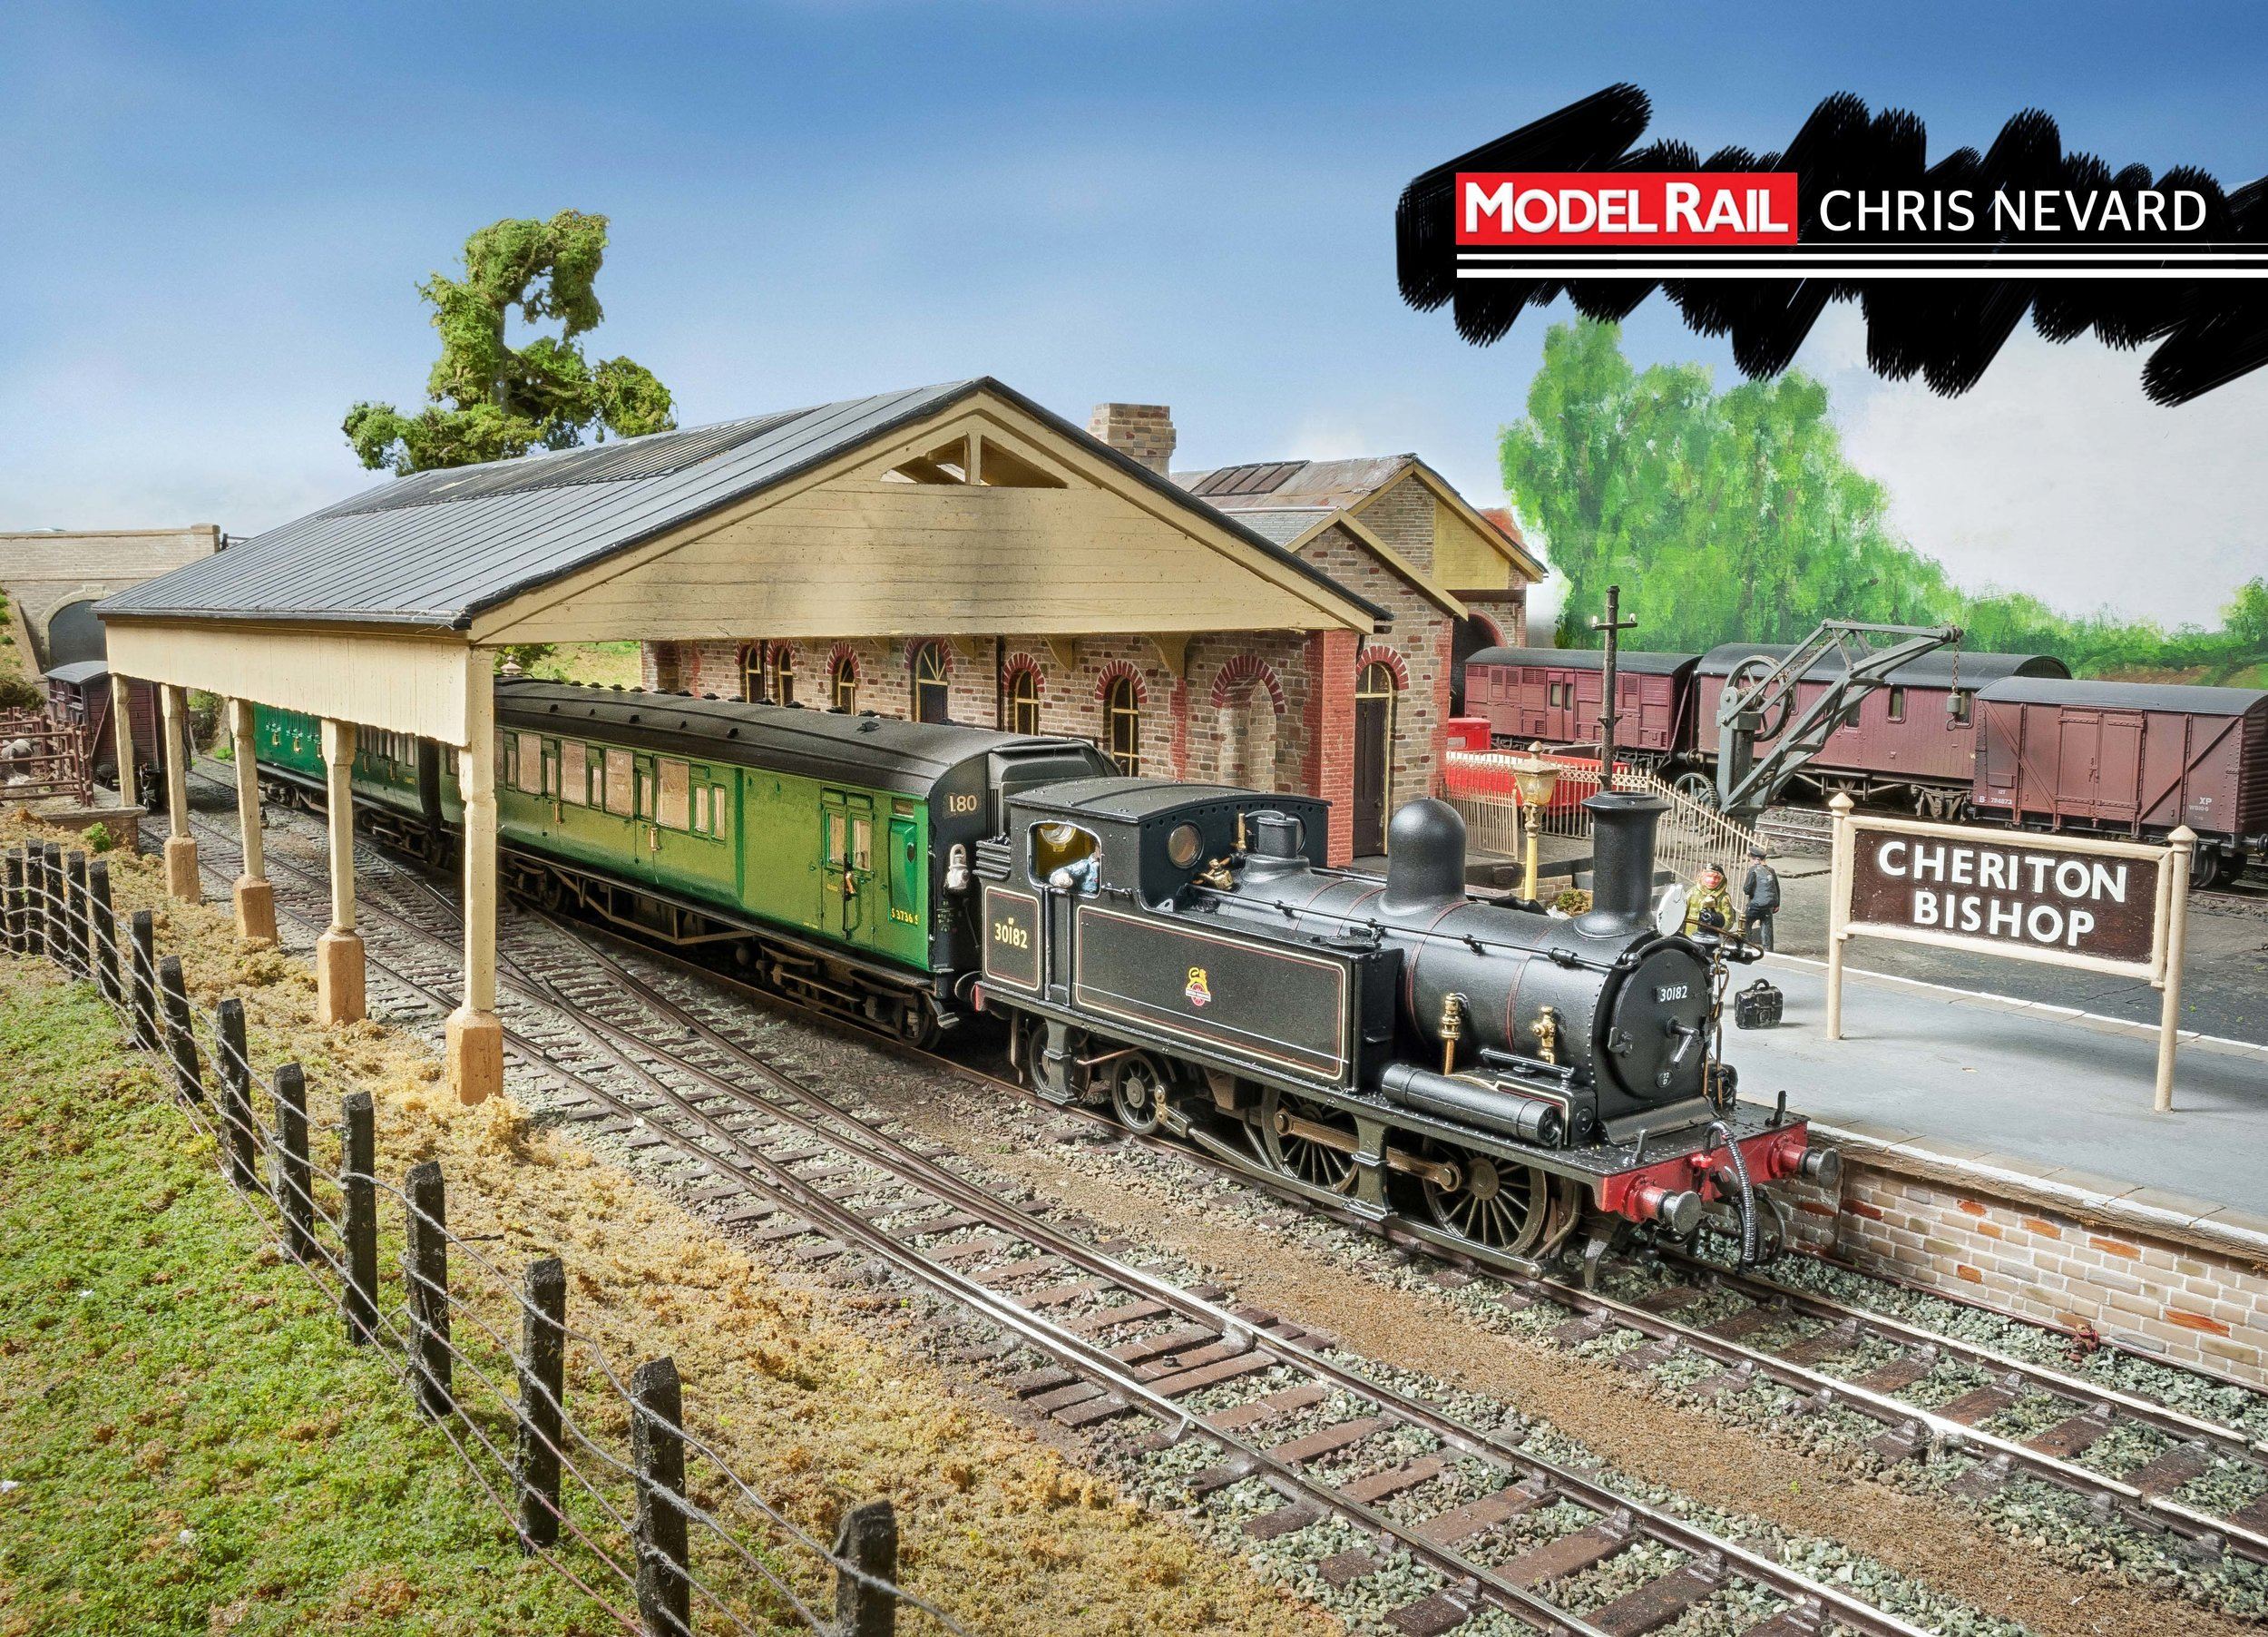 Kernow DJModels Adams 'O2' 0-4-4T No. 30182 hauls a rake of Hornby Maunsell Coaches. CHRIS NEVARD